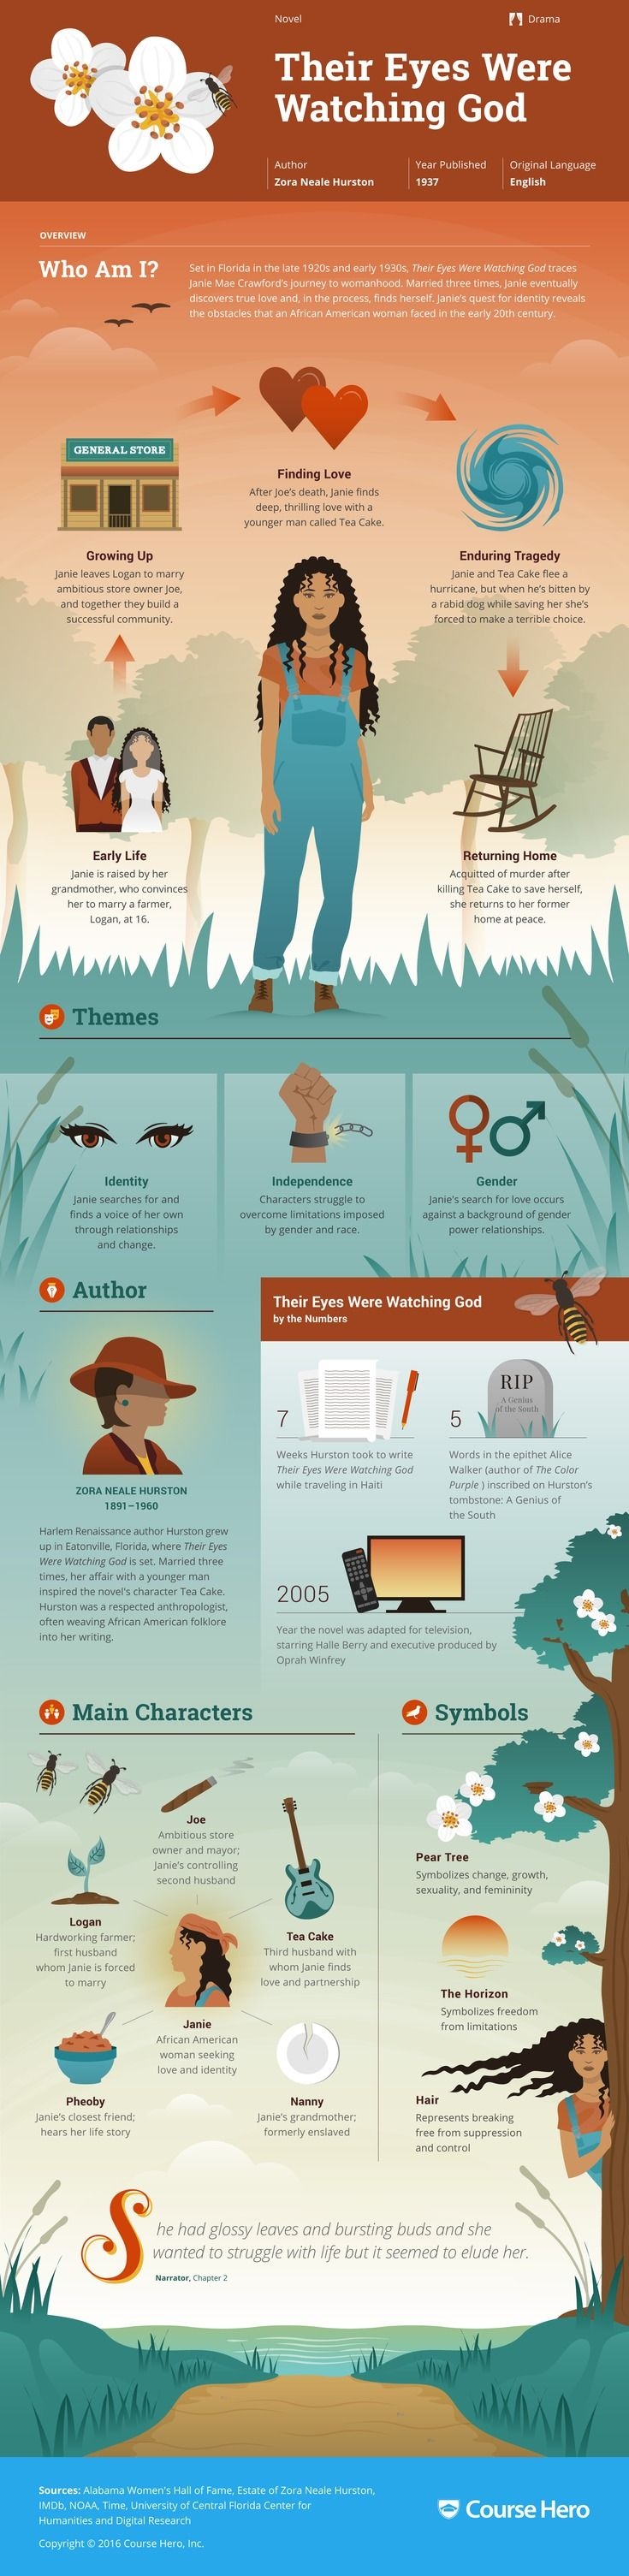 images about literature a clockwork orange study guide for zora neale hurston s their eyes were watching god including chapter summary character analysis and more learn all about their eyes were